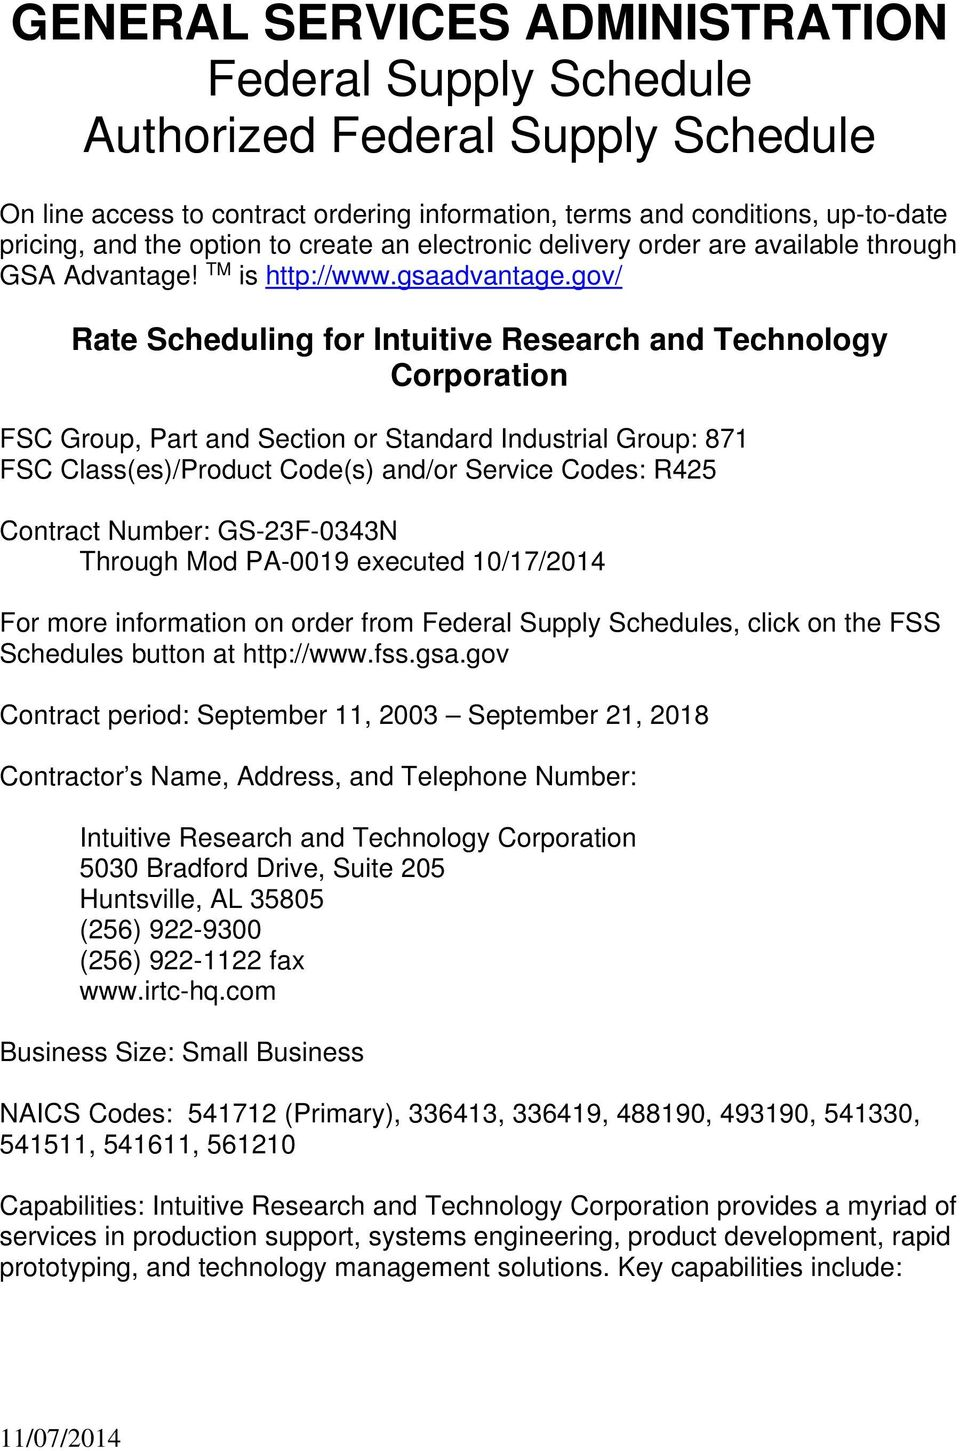 gov/ Rate Scheduling for Intuitive Research and Technology Corporation FSC Group, Part and Section or Standard Industrial Group: 871 FSC Class(es)/Product Code(s) and/or Service Codes: R425 Contract